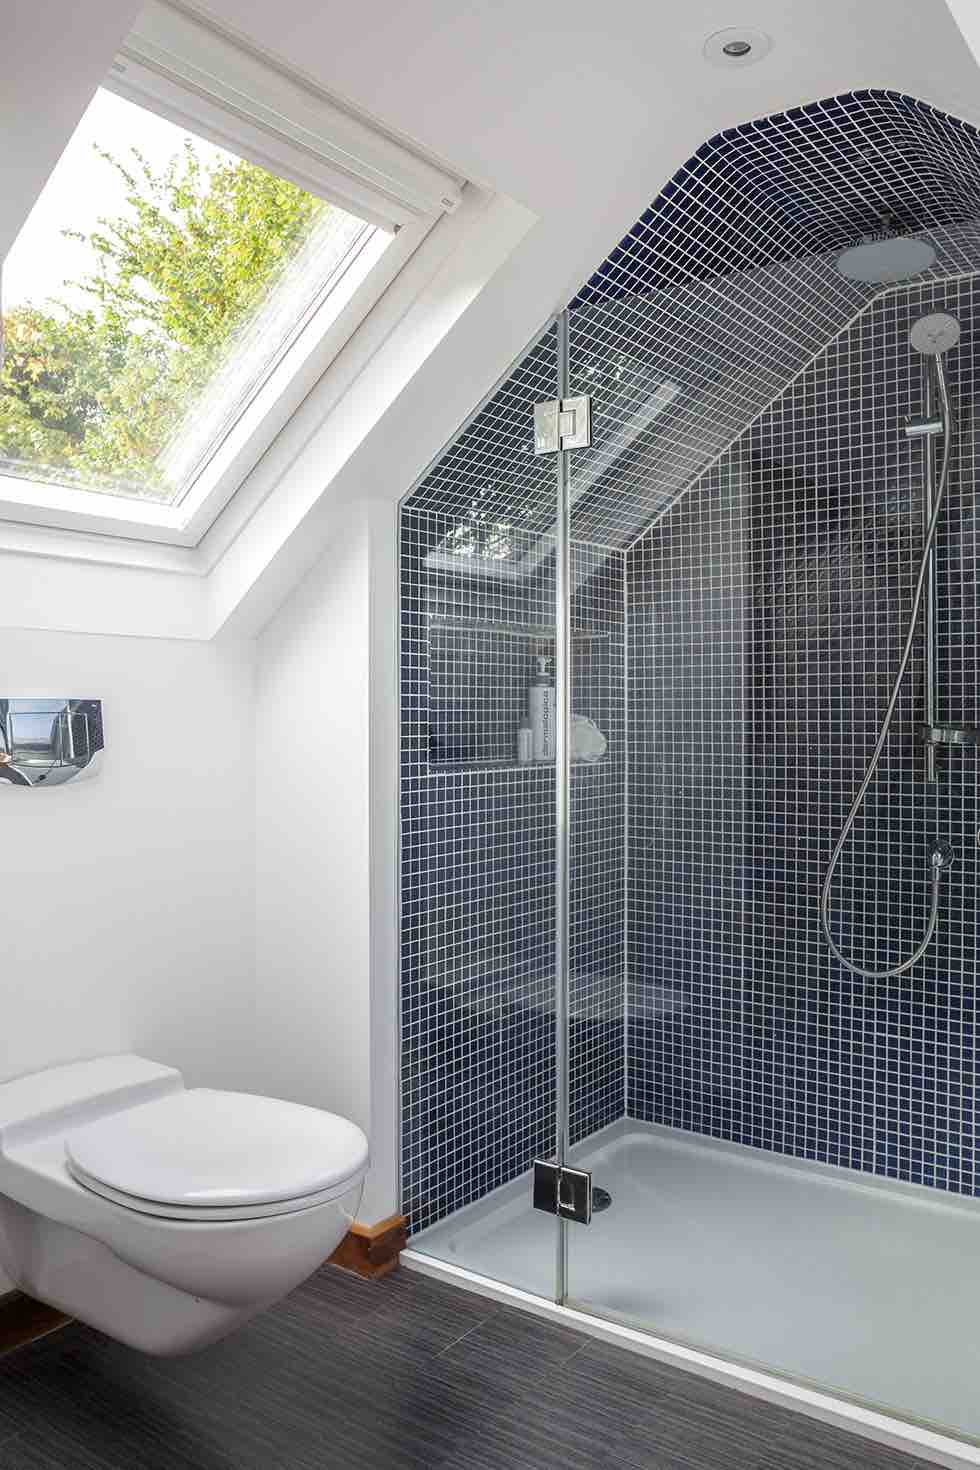 bathroom exciting inspiration remarkable ideas decoration pictures design marvellous images classic contemporary tiles